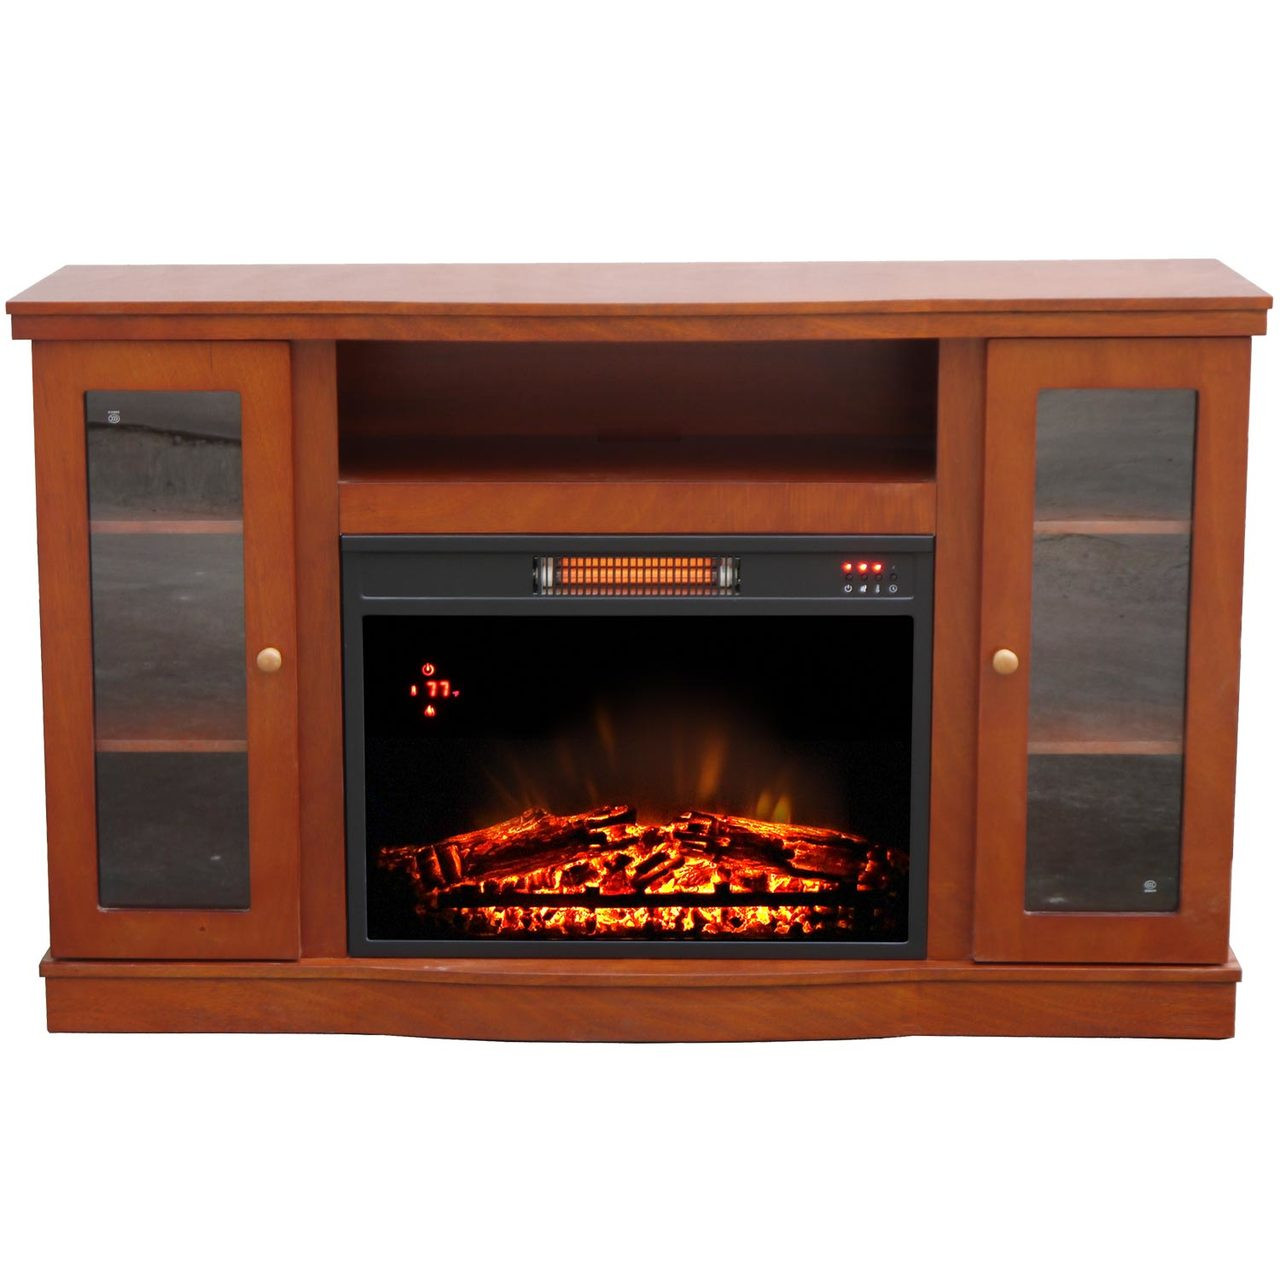 electric media fireplaces n with fireplace black the home venting in stands heating tv b cooling w depot center